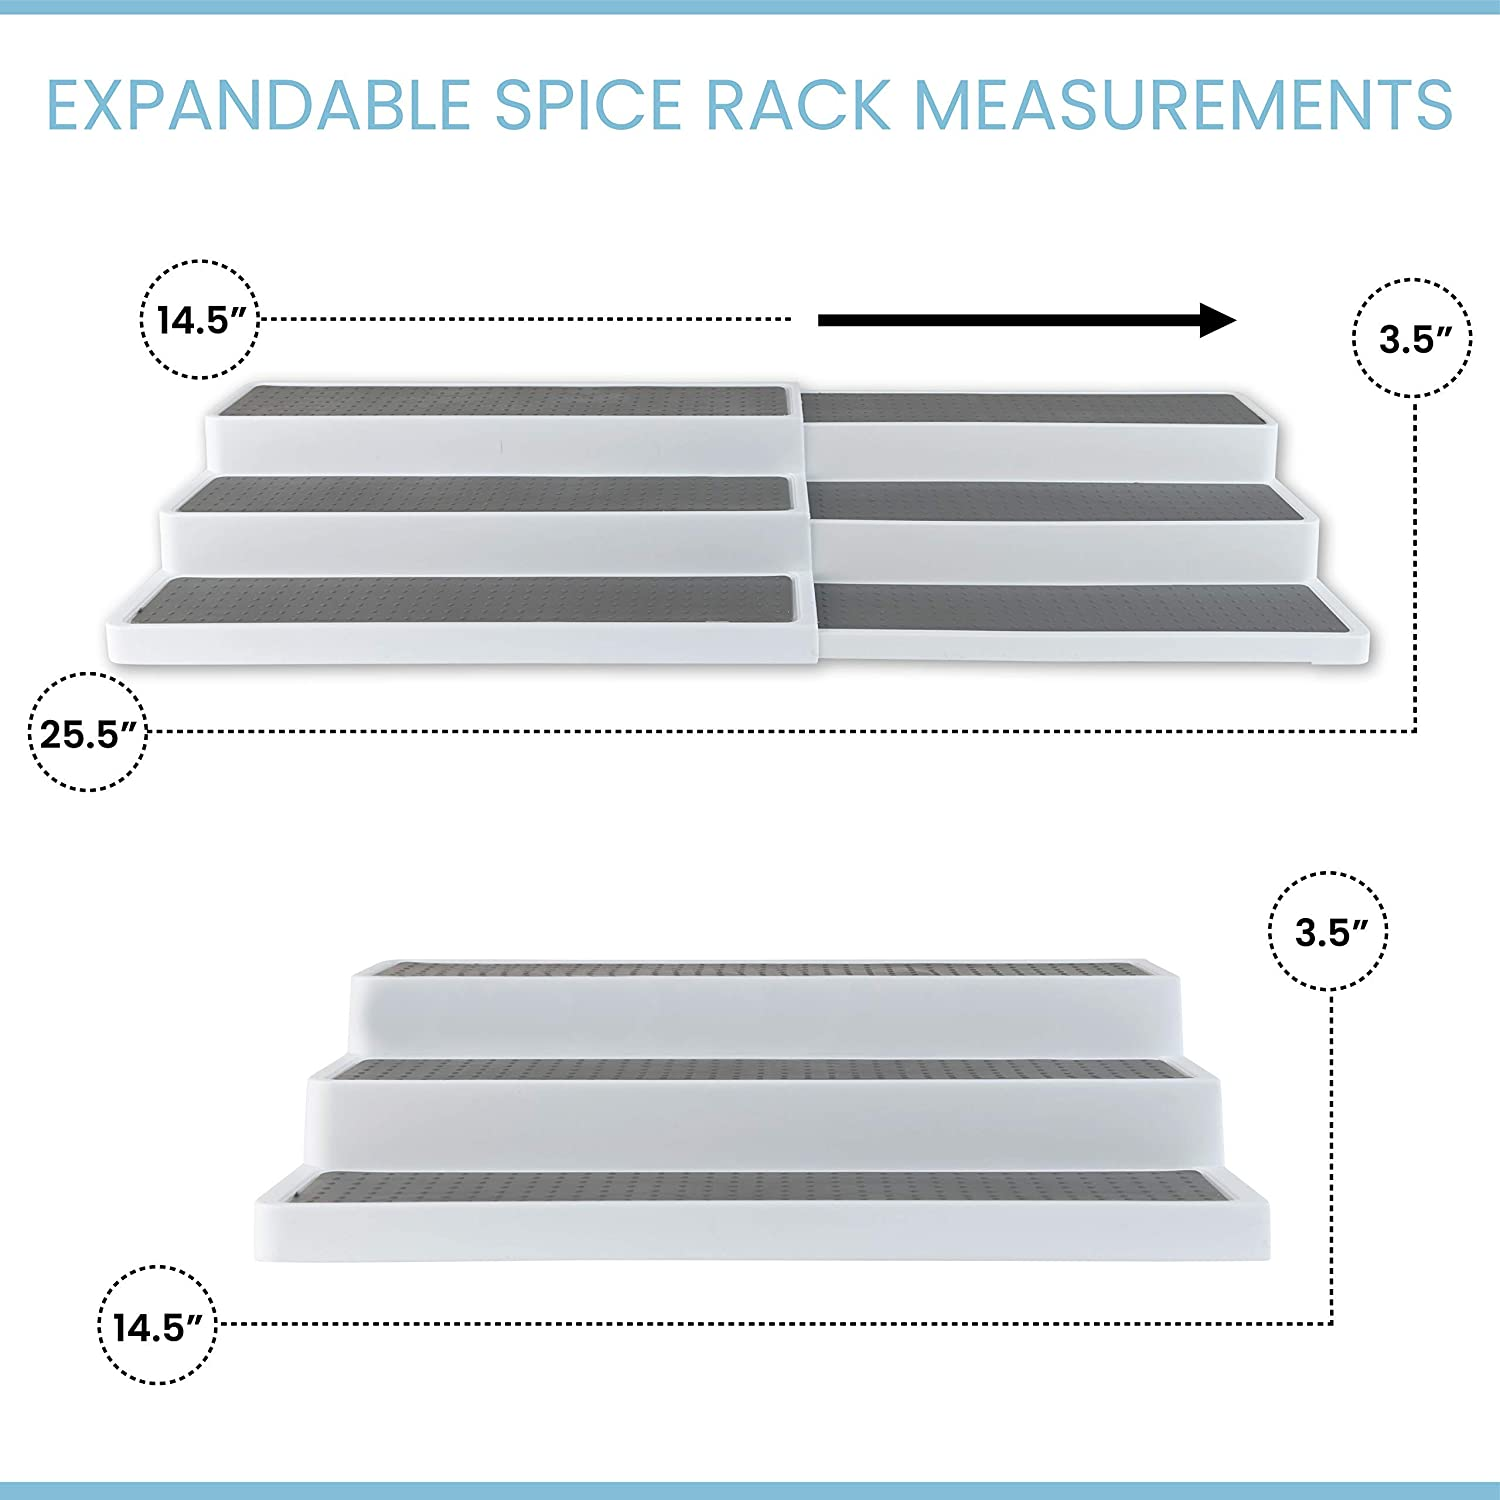 Homeries Spice Rack 3-Tier 2 Pack - Modern Design Waterproof and Non Skid Shelf Kitchen Organizer for Pantry Cabinet or Countertop Use: Home Improvement